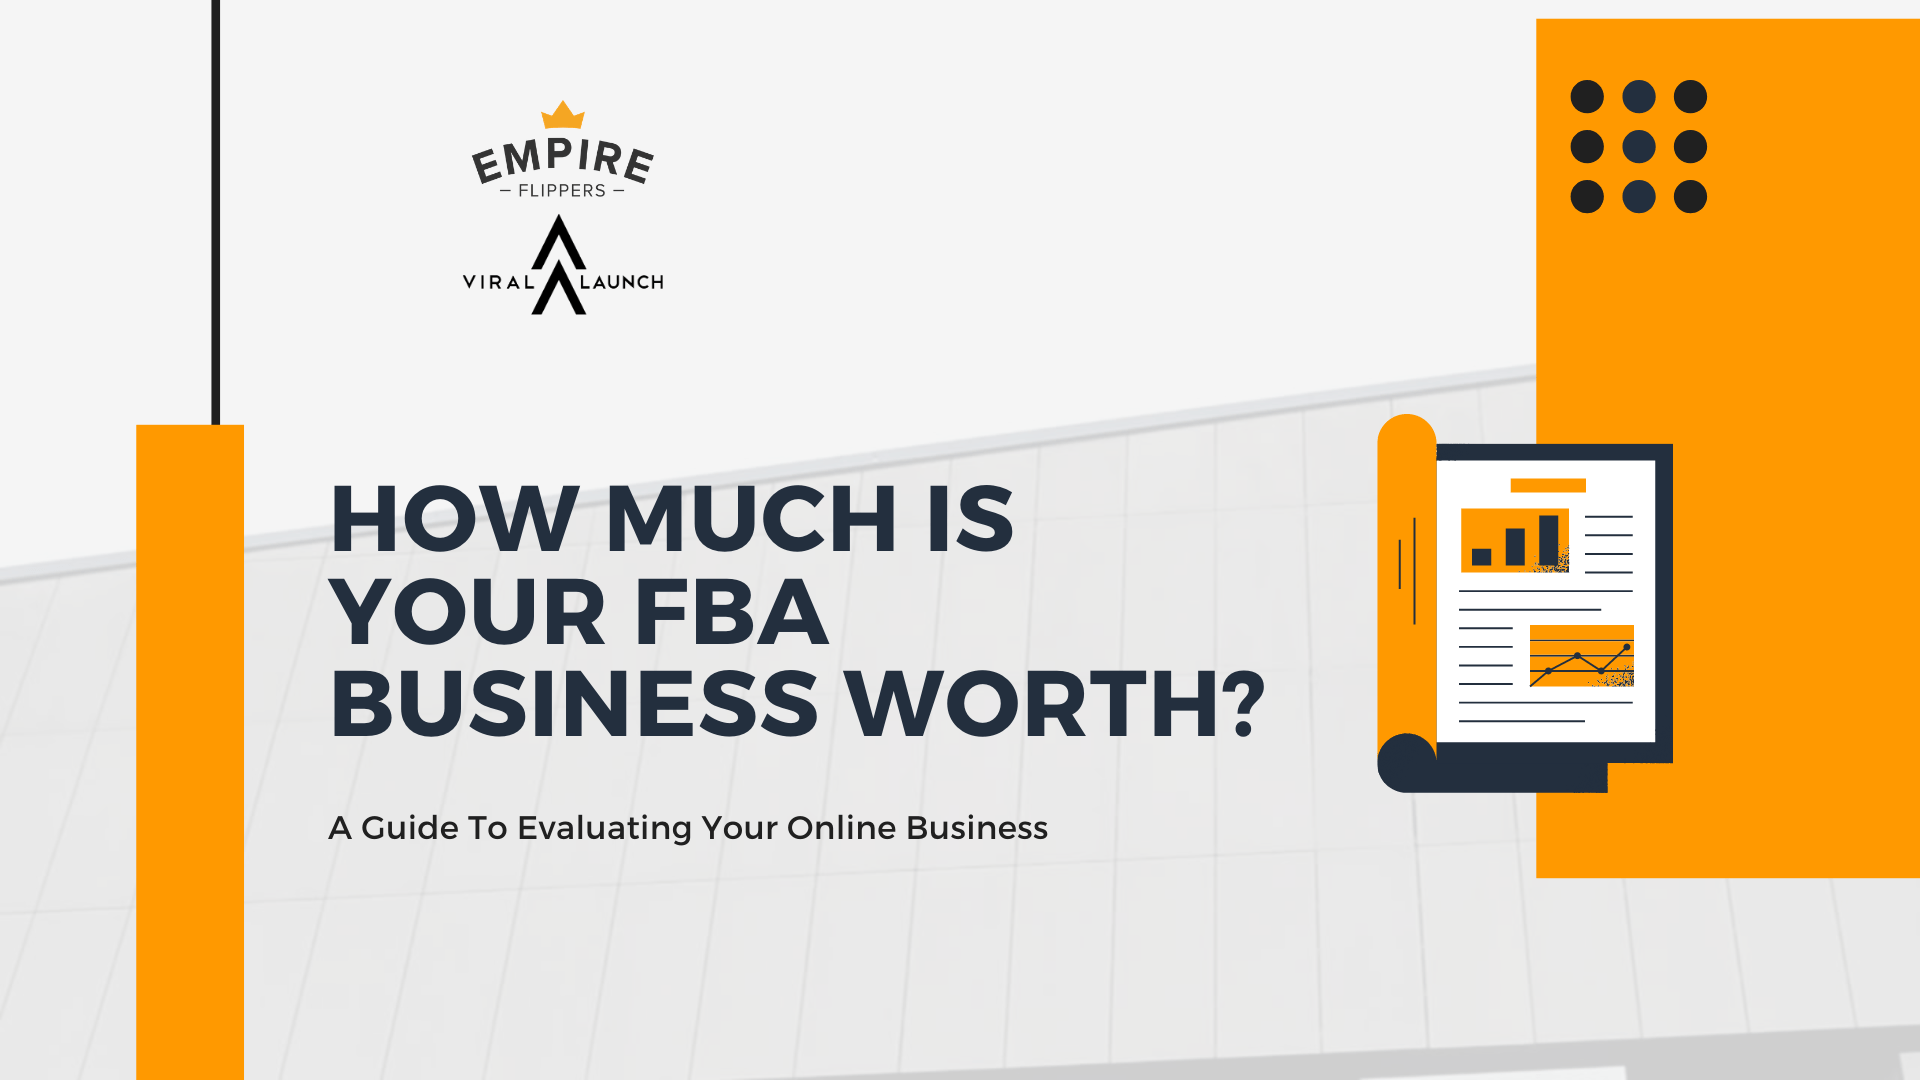 how much is your fba business worth? by empire flippers